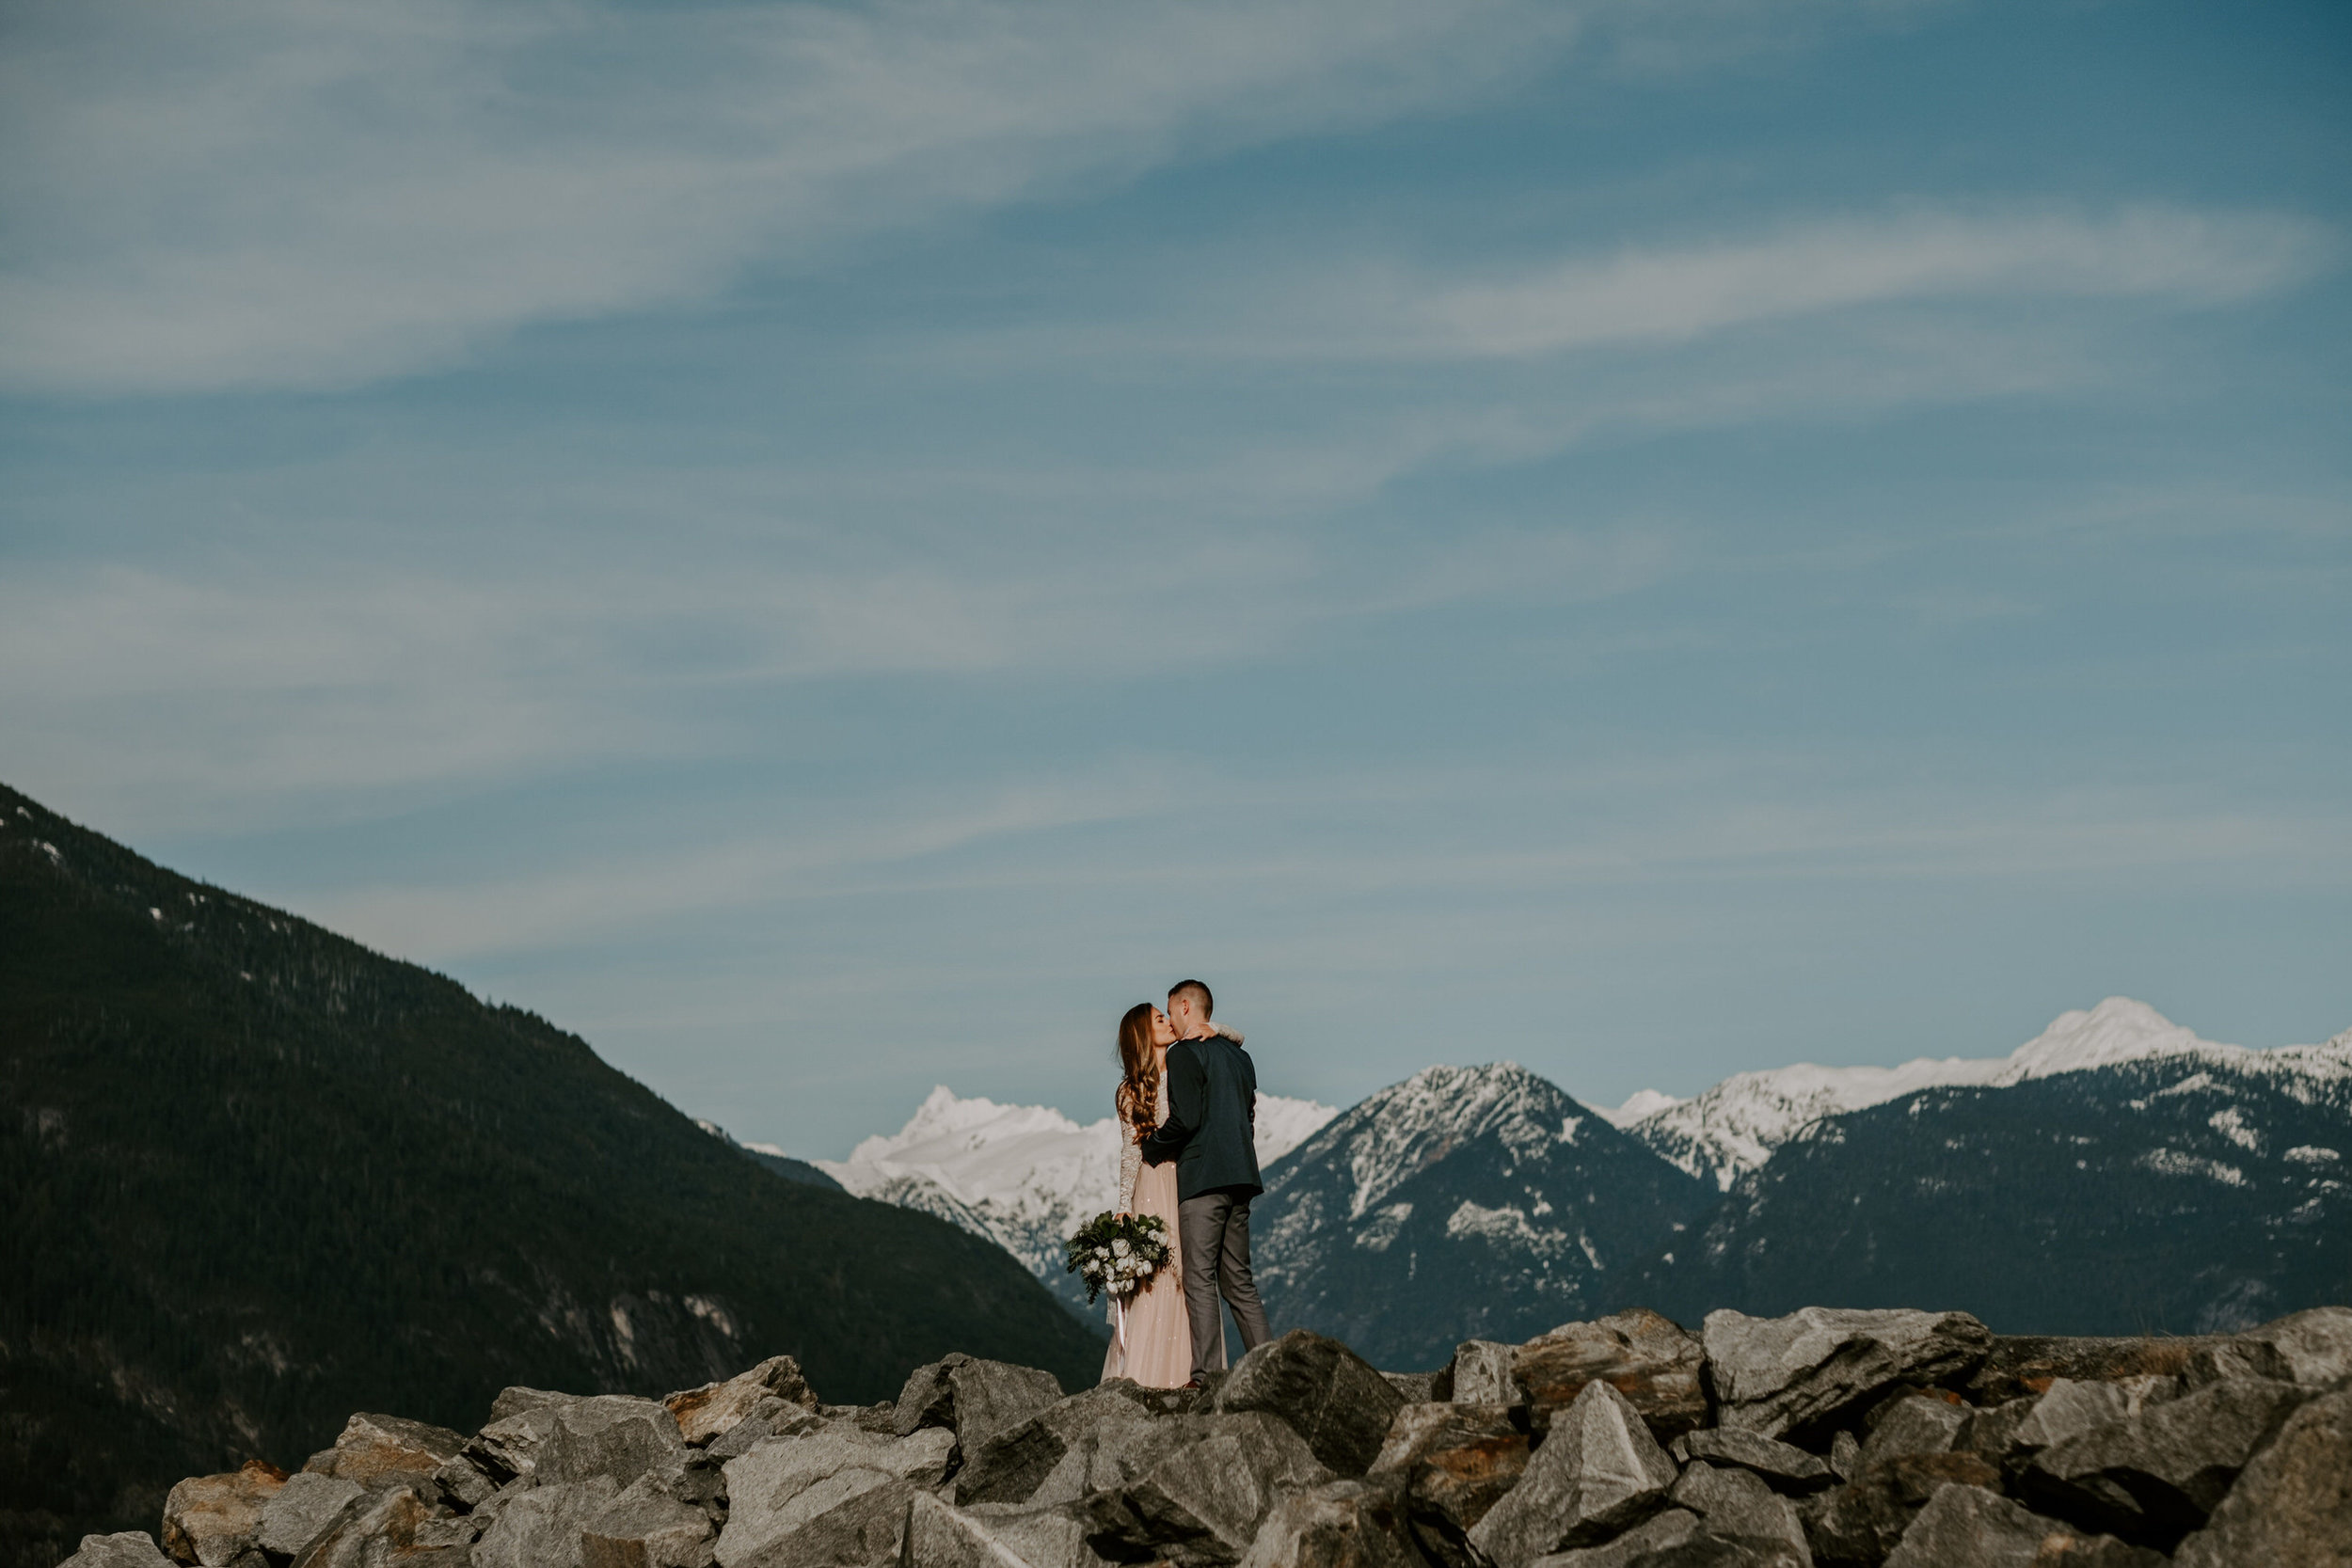 Squamish Engagement Photos - Porteau Cove Engagement Photos - Sunshine Coast Wedding Photographer - Vancouver Wedding Photographer - Squamish Wedding Photographer419.JPG